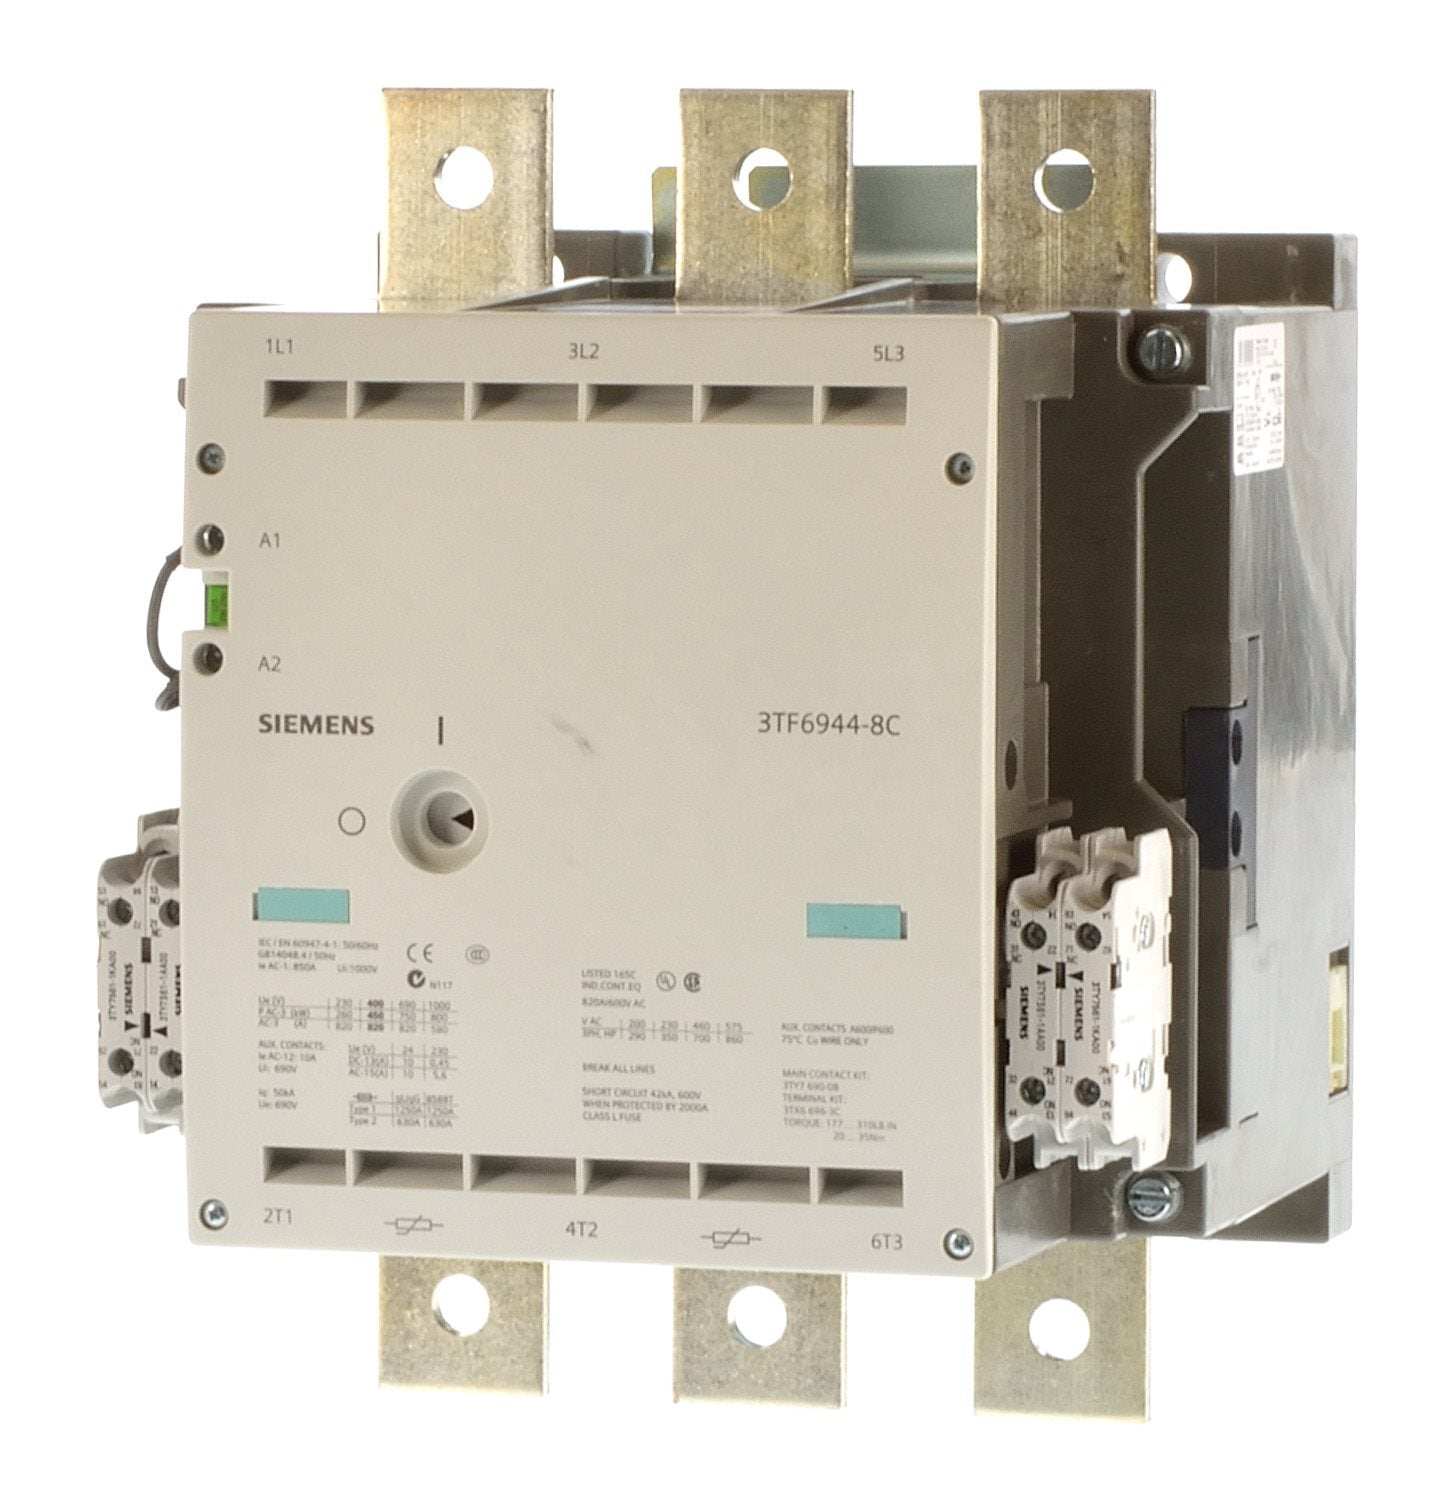 Furnas Contactor Wiring Diagram Alternating Best Secret Electric Heat Strips Siemens 3tf50 38 Ac Catalog Cross Referance